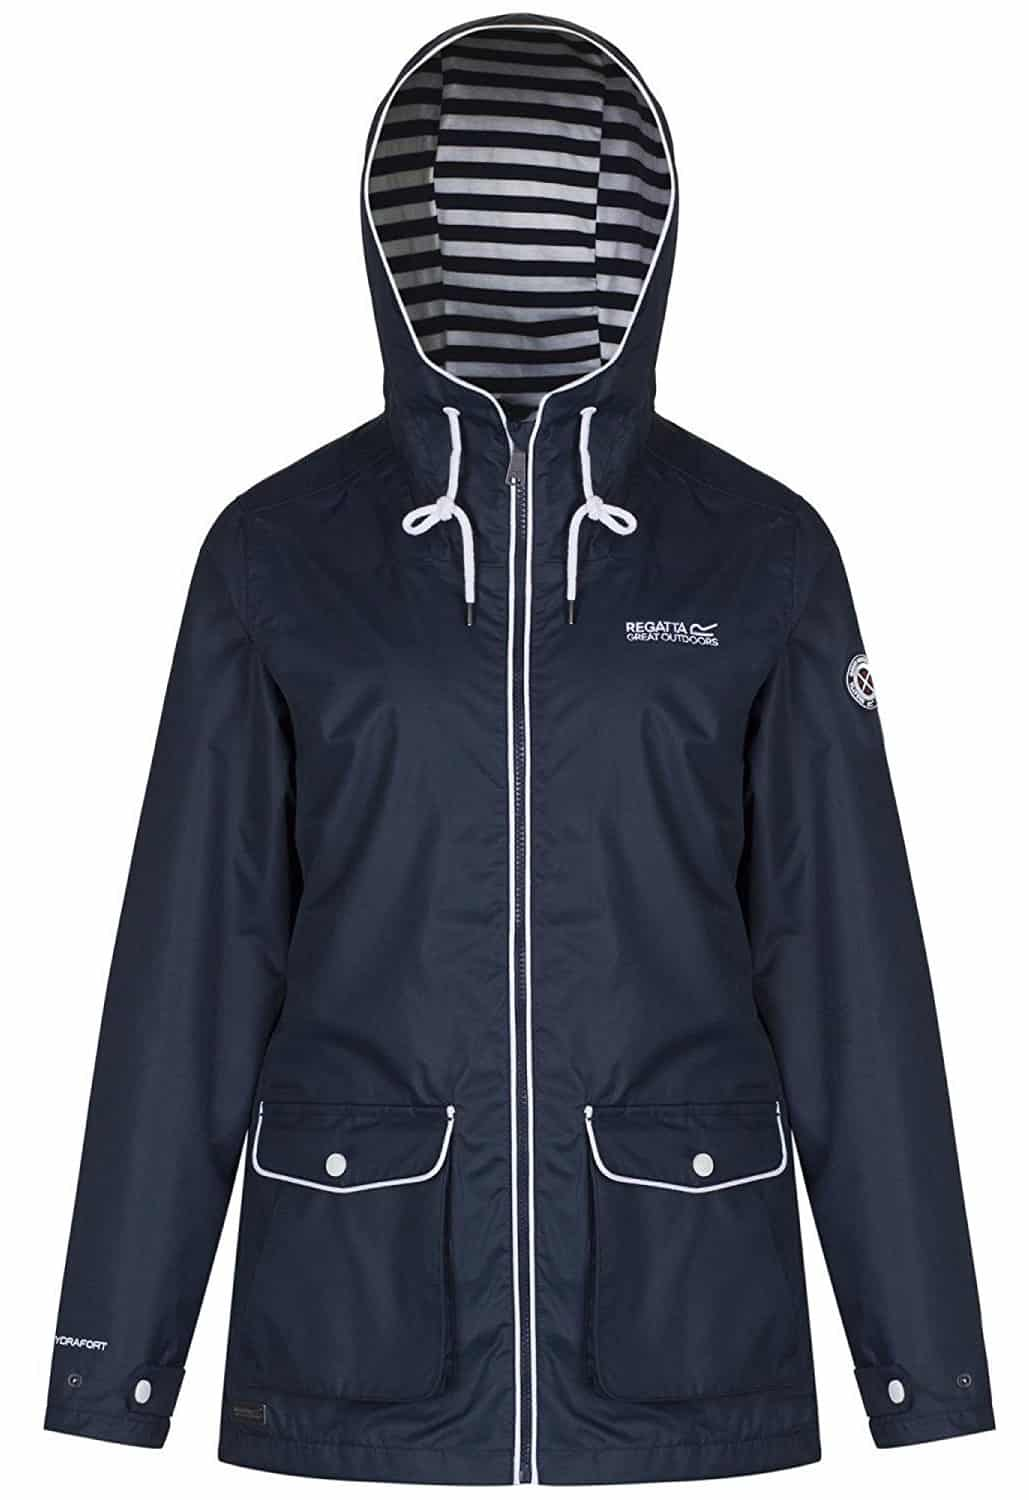 Womens Waterproof Windproof Jacket – Regatta